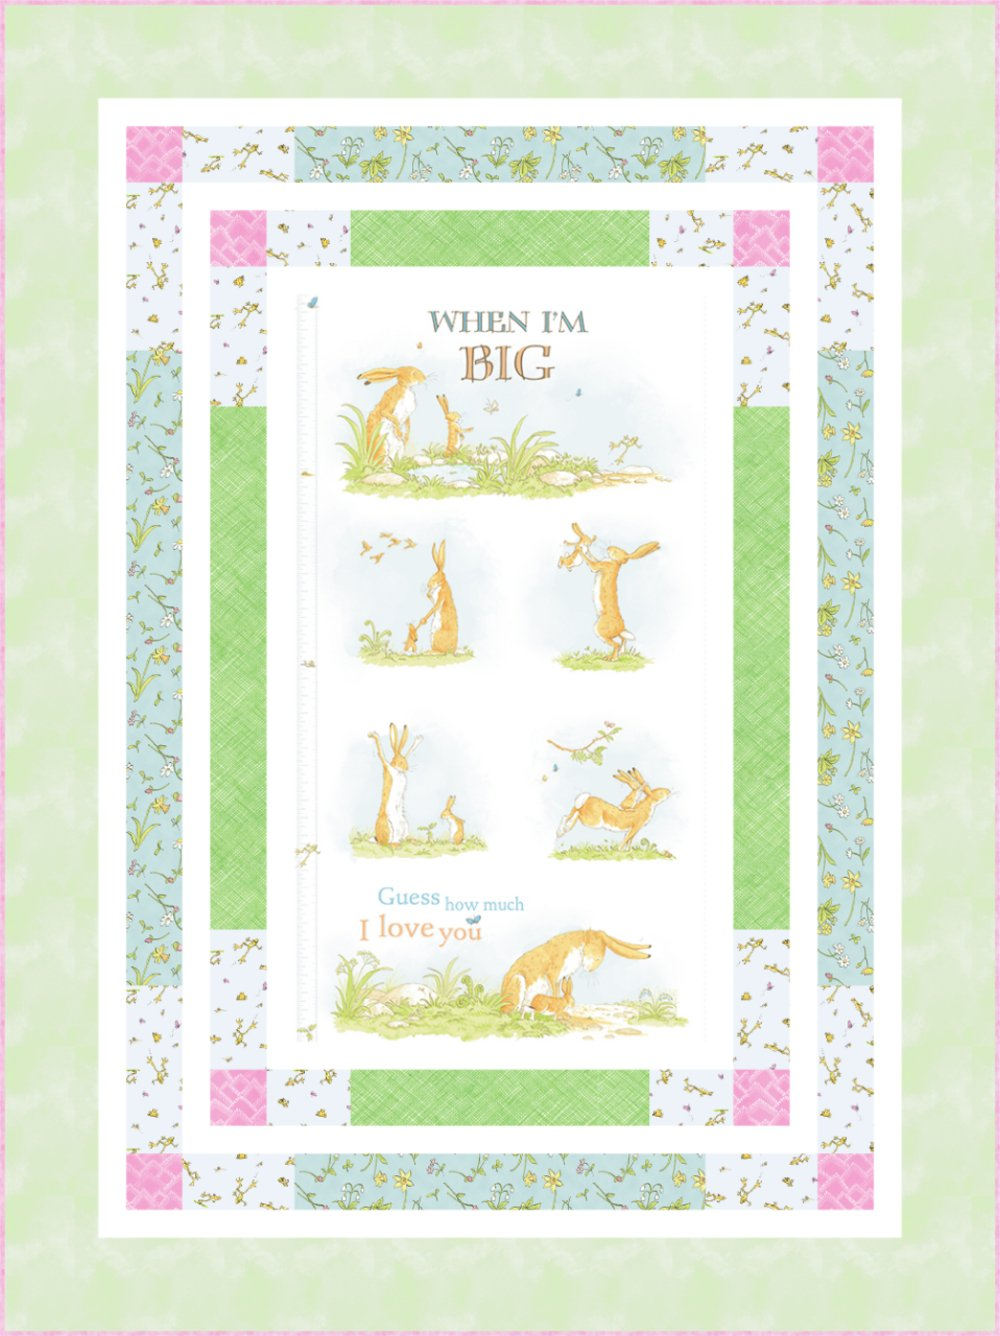 When I'm Big Panel Quilt Kit (53.5 x 71.5) - Green